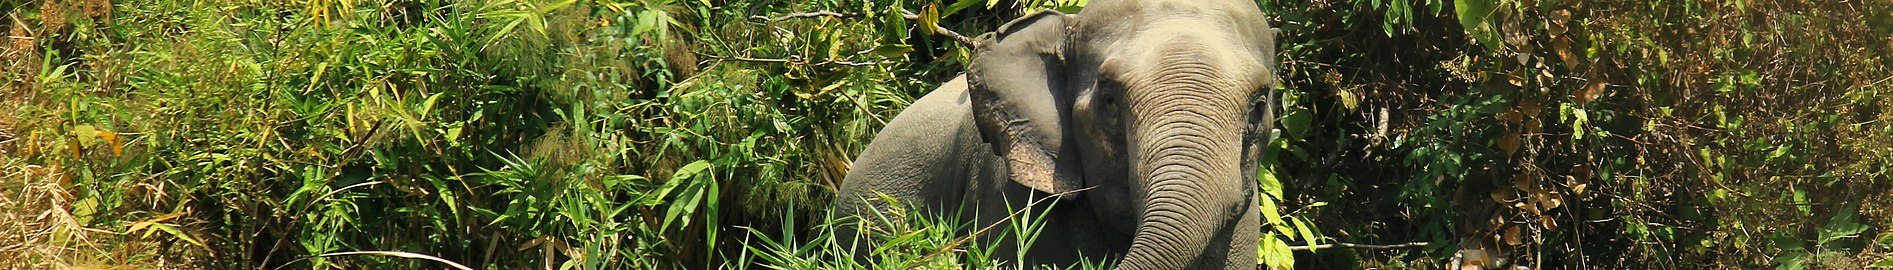 Asian Elephant in Inani, Cox's Bazar (cropped).jpg